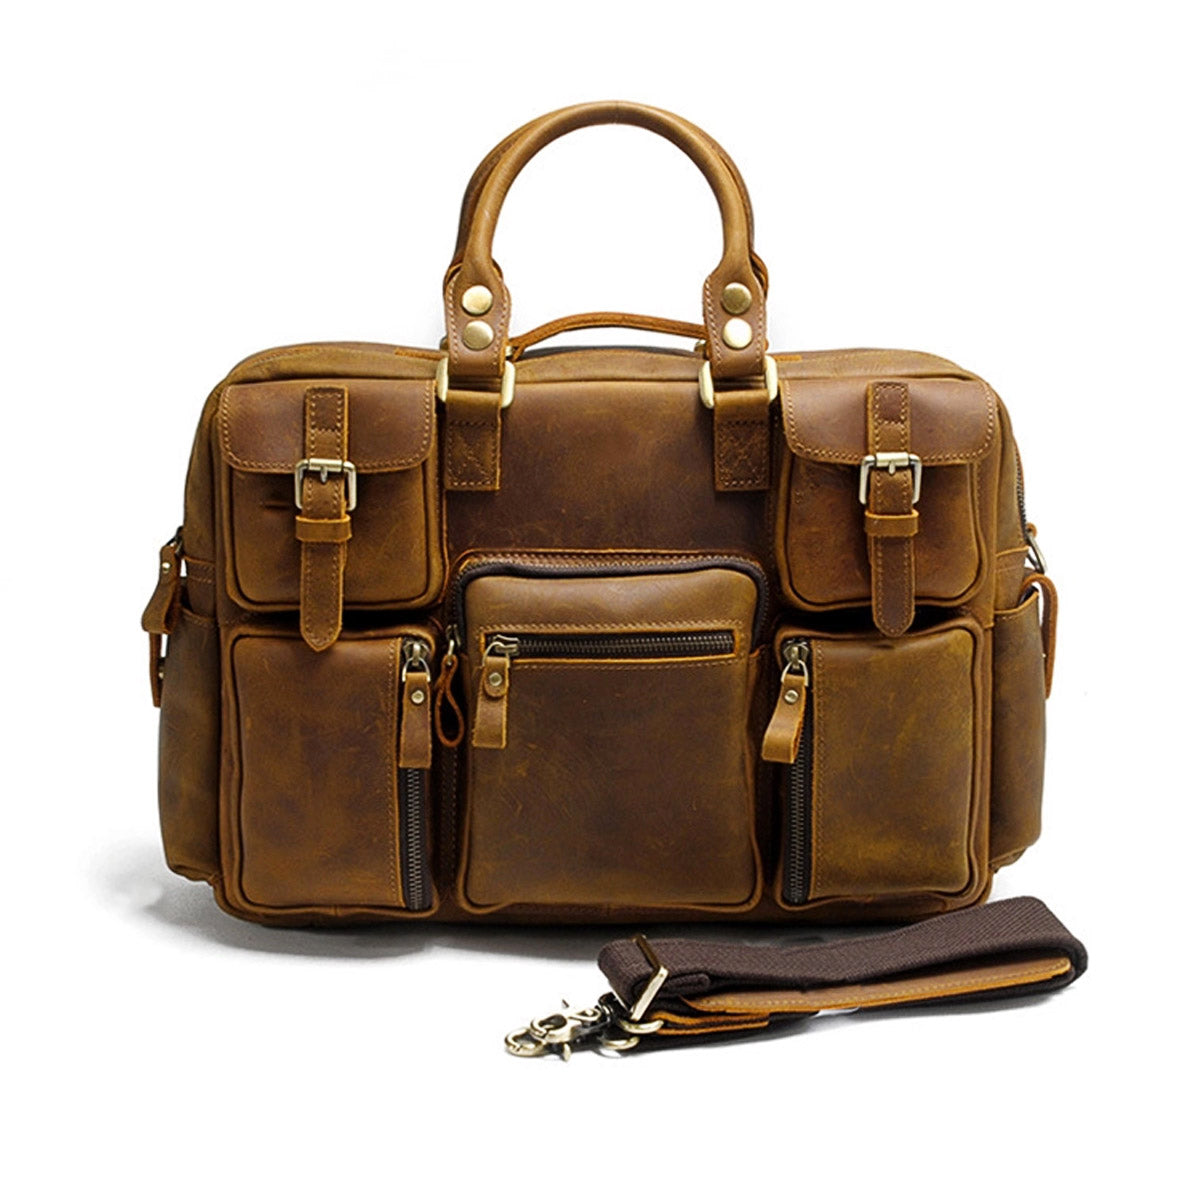 The Kemble Leather Messenger Bag